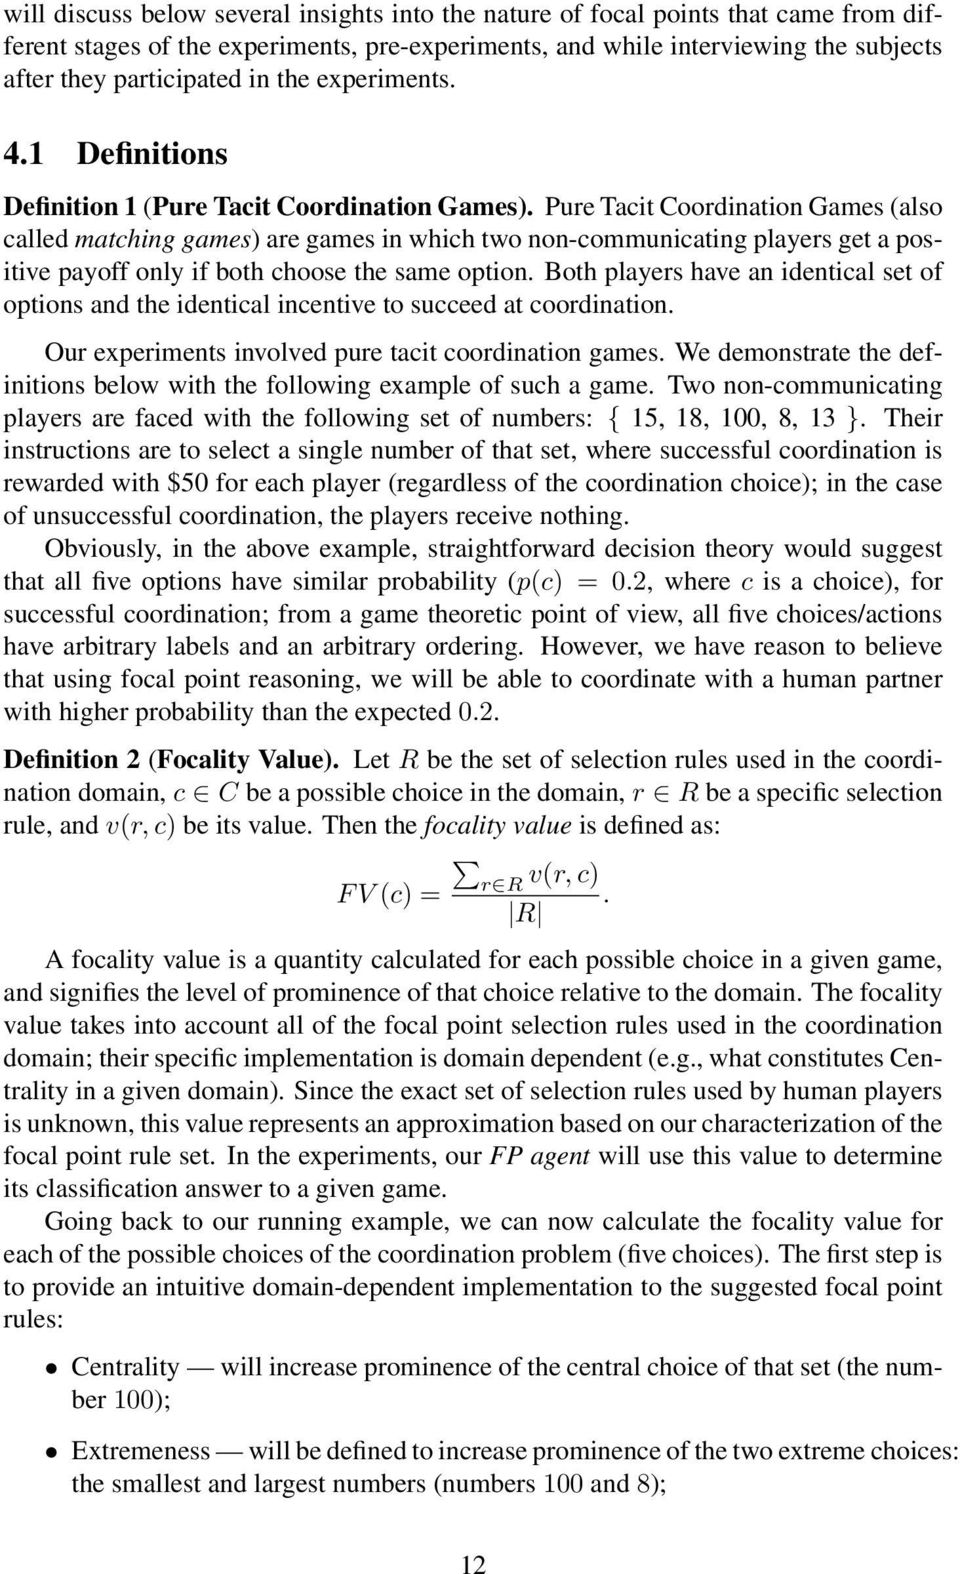 Pure Tacit Coordination Games (also called matching games) are games in which two non-communicating players get a positive payoff only if both choose the same option.